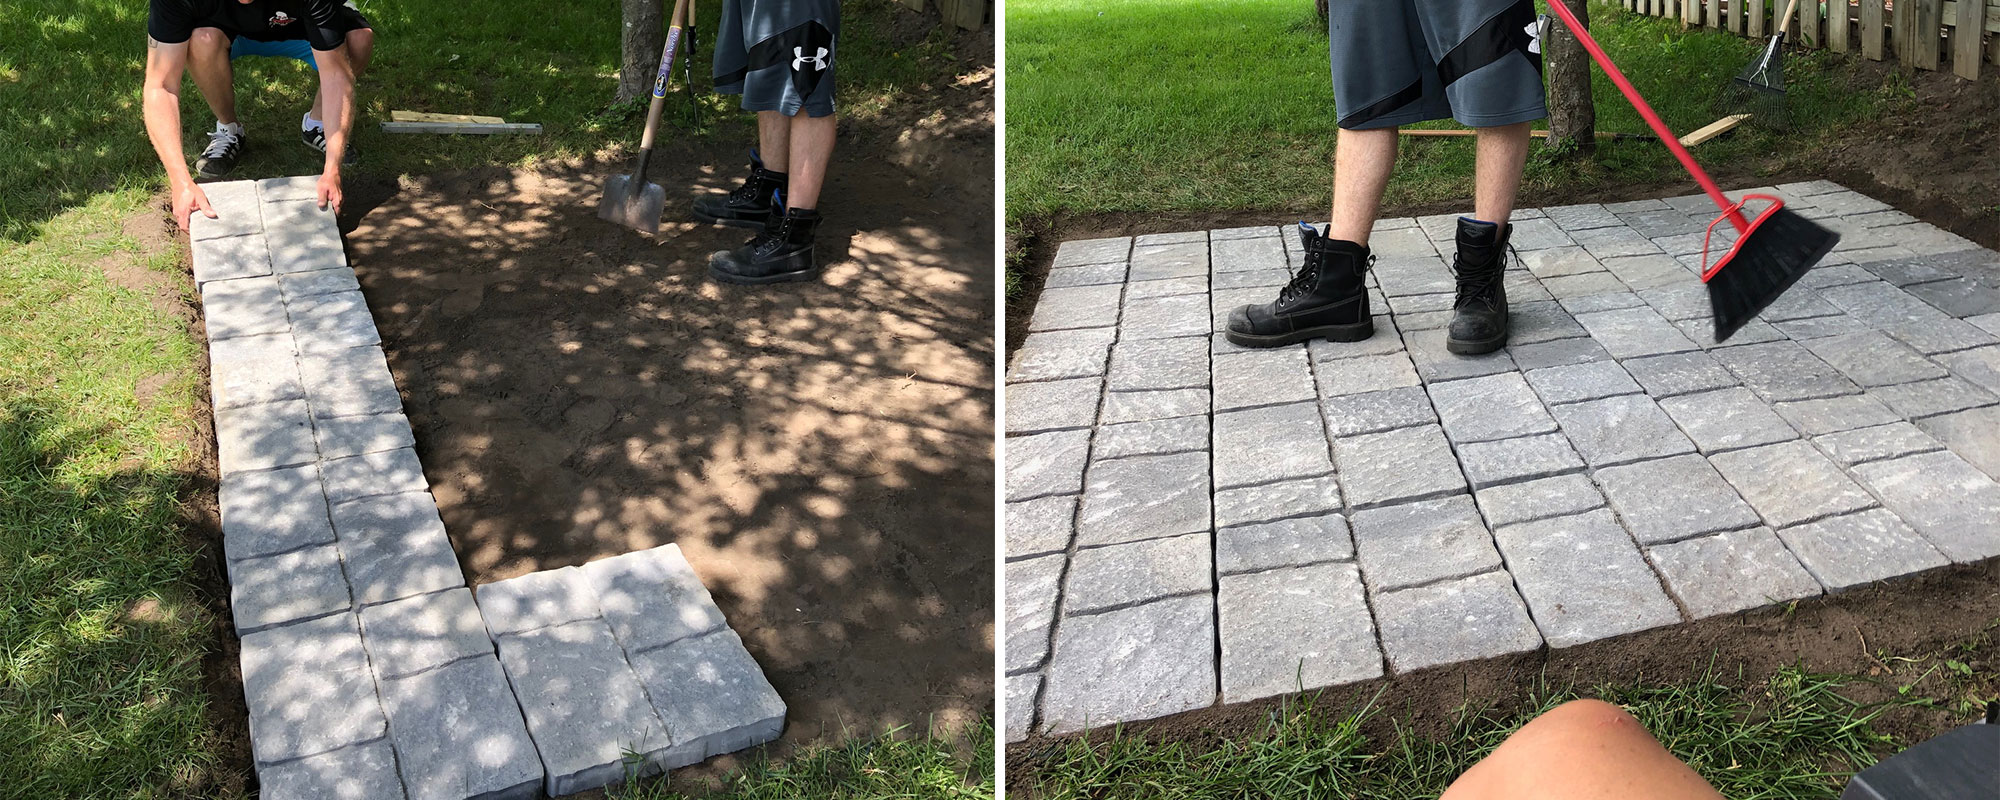 Image left: Positioning the patio stones on which the bar will sit. Image right: Sweeping completed patio area for bar.